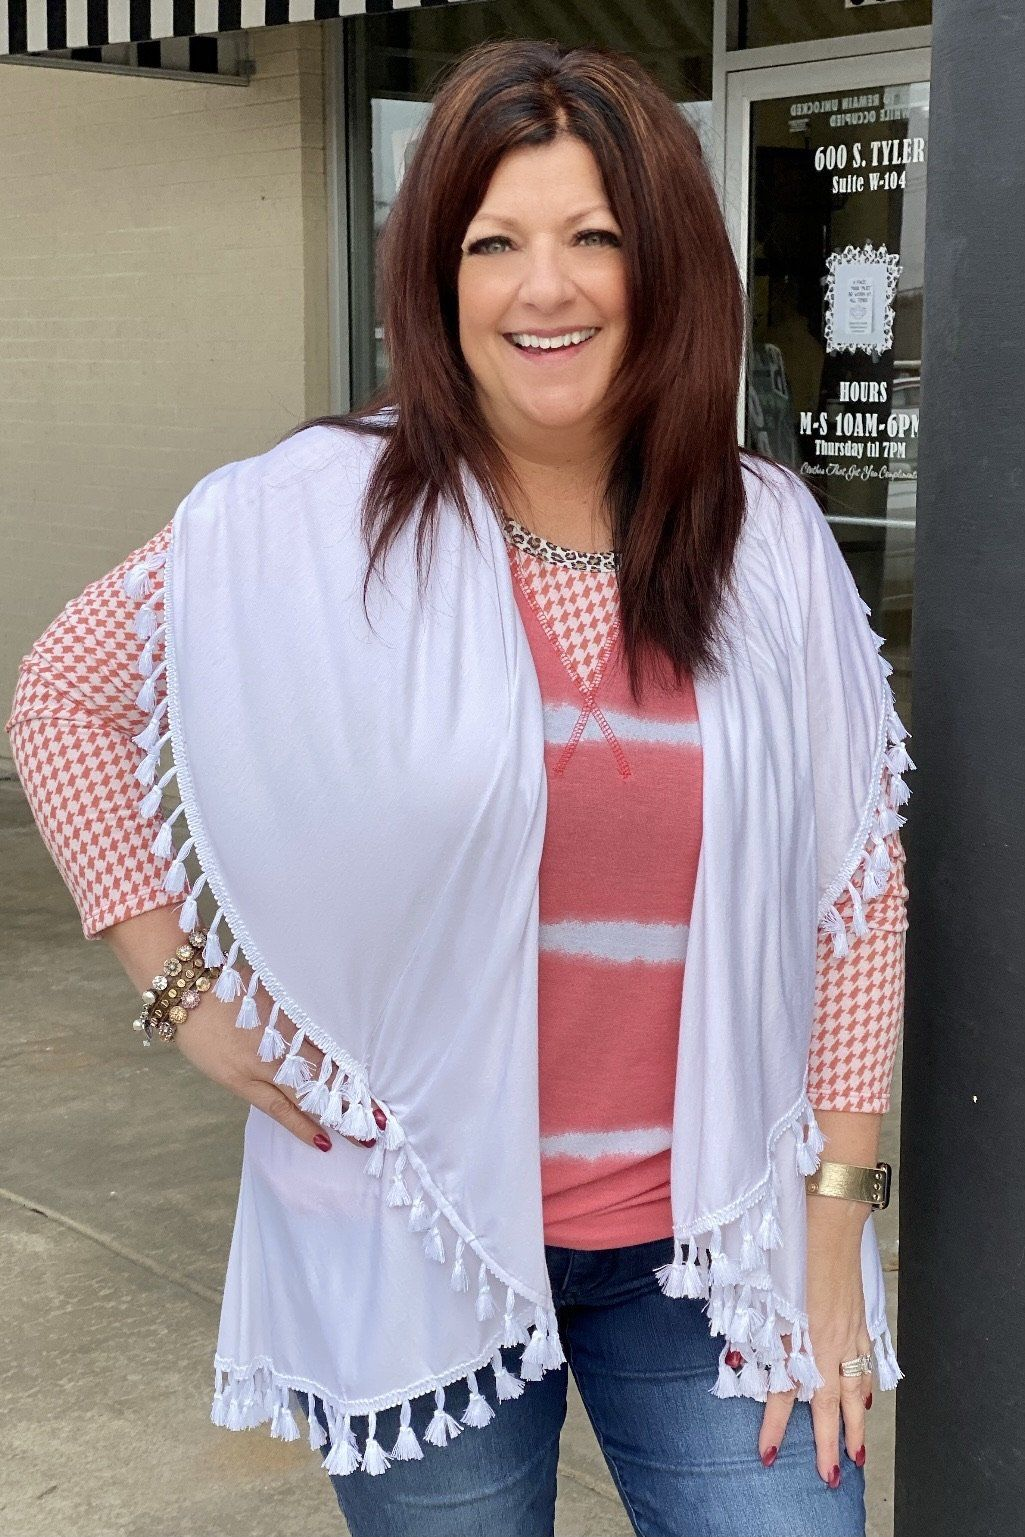 Cardigan with fun tassel trim OUTFIT COMPLETER K.Lane's Boutique